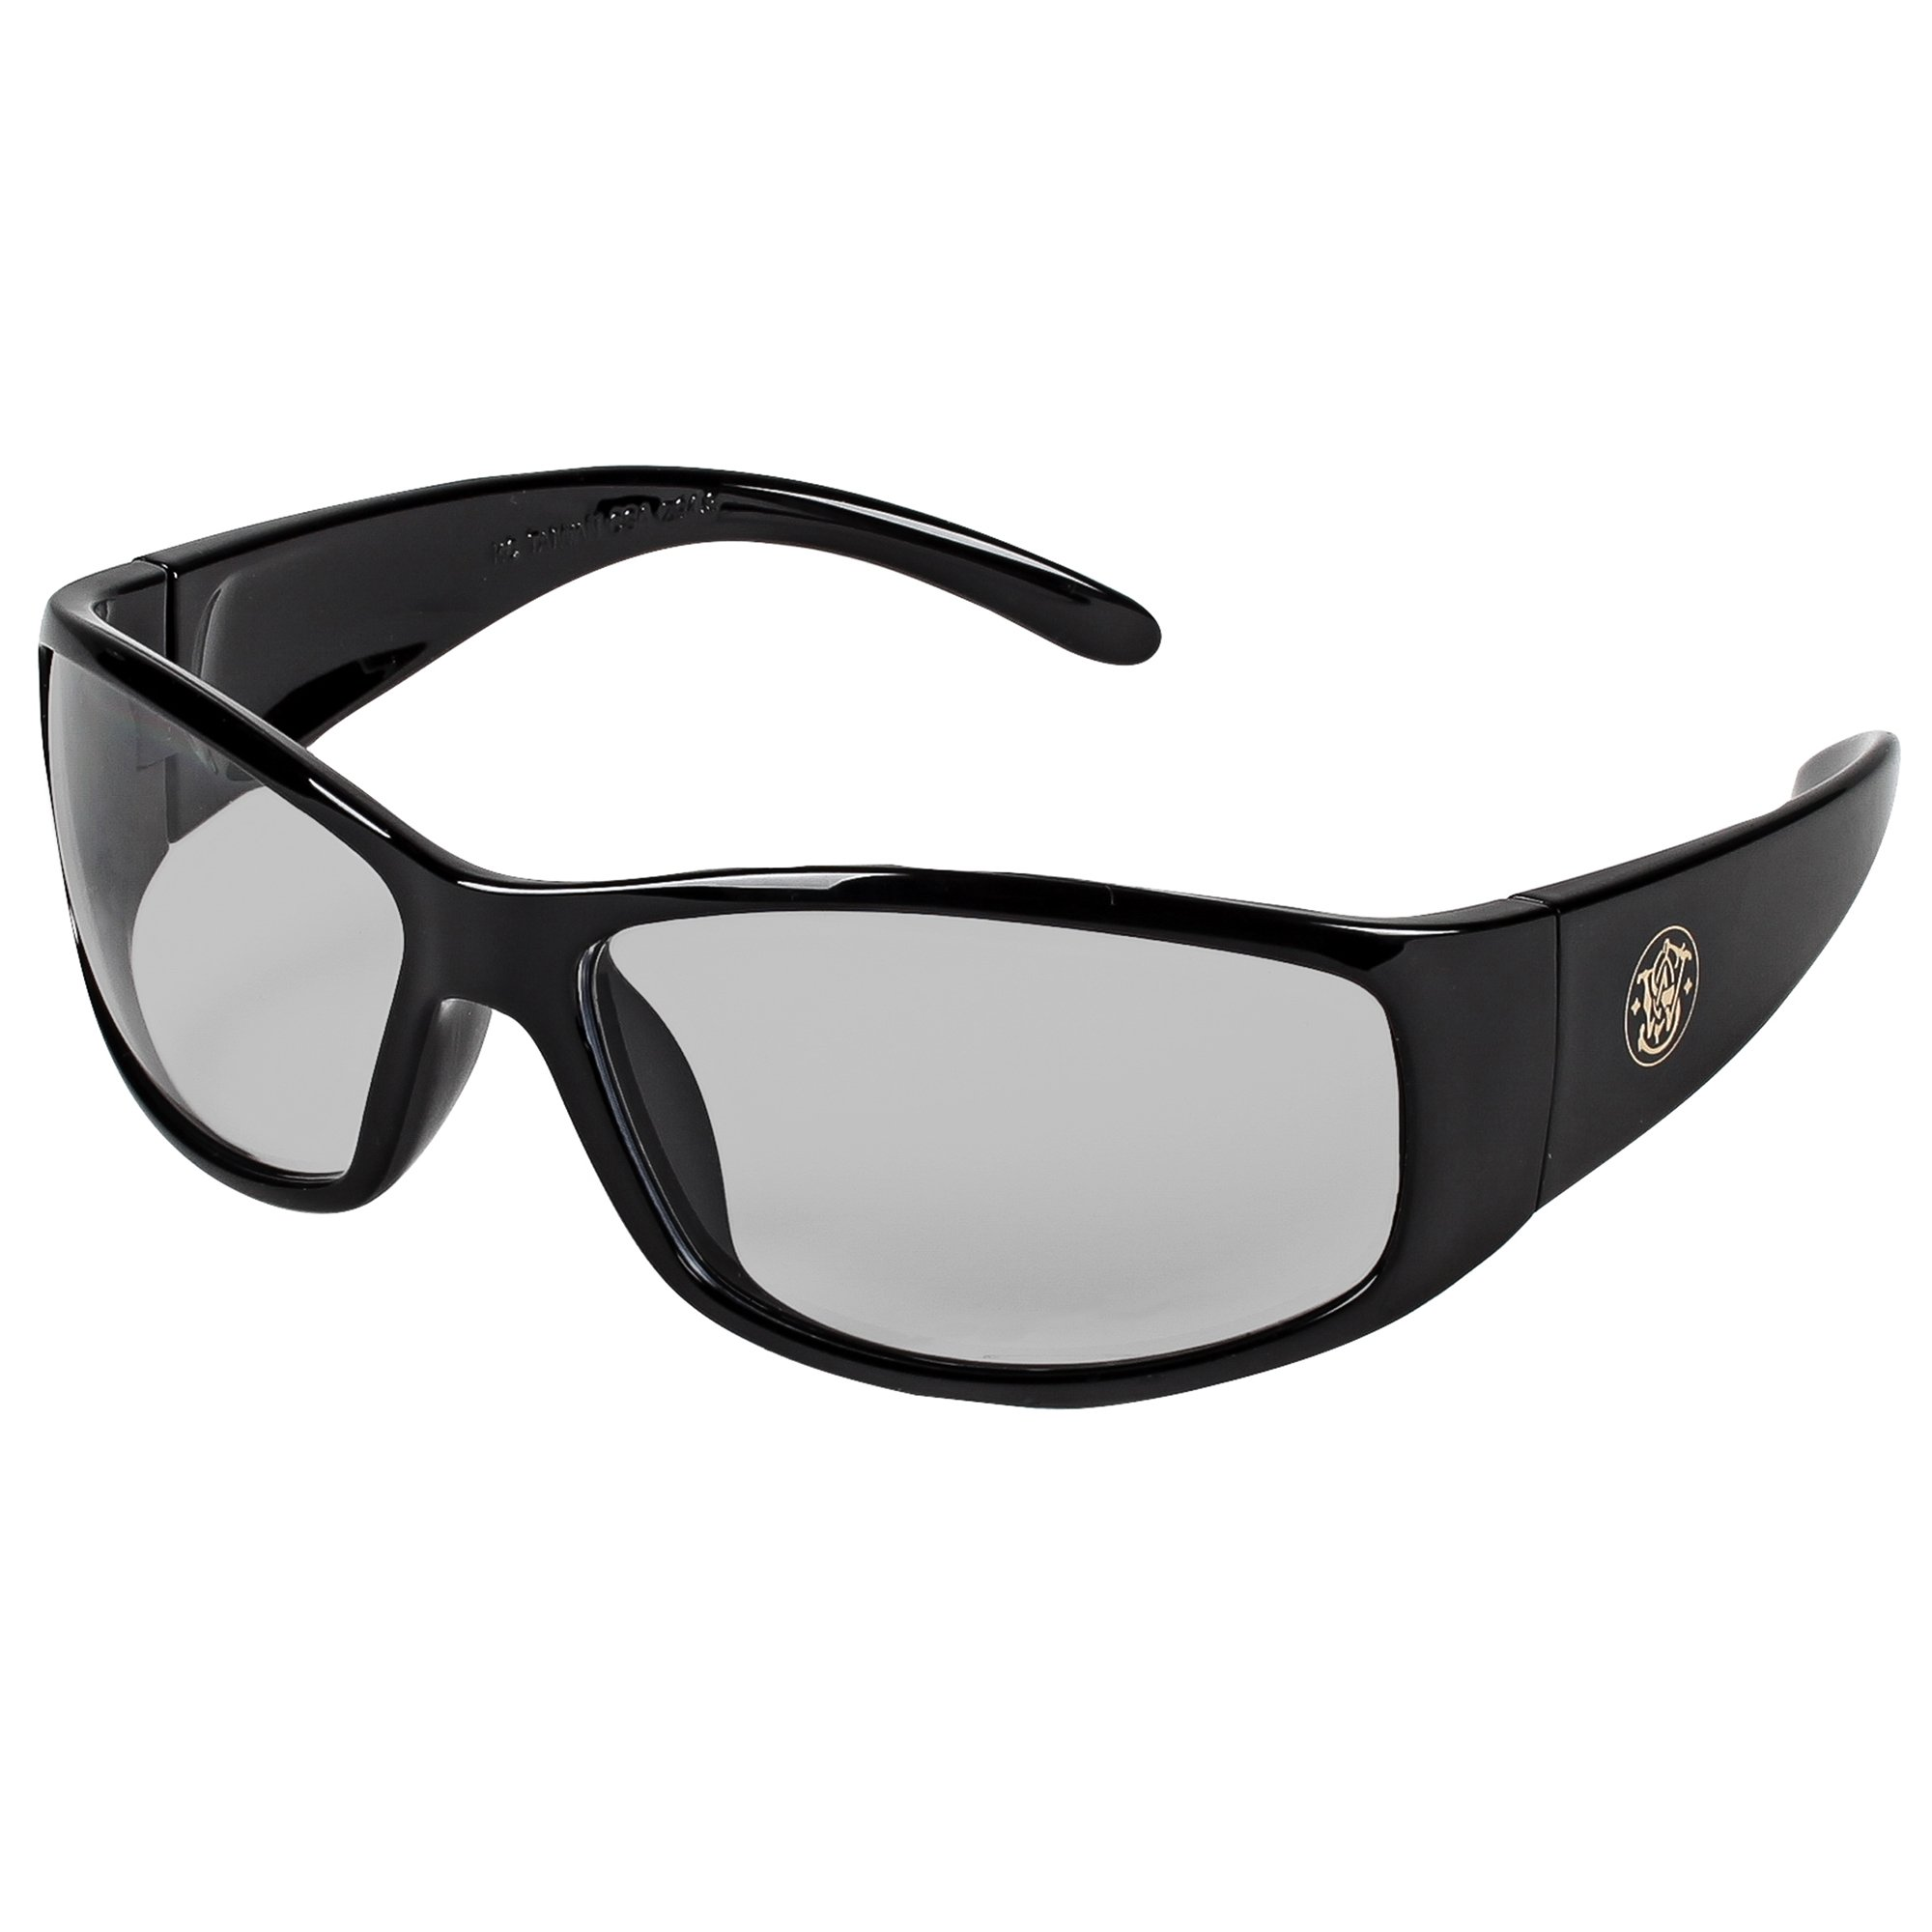 Smith and Wesson Safety Glasses (21306), Elite Safety Sunglasses, Indoor / Outdoor Lenses with Black Frame, 12 Pairs / Case